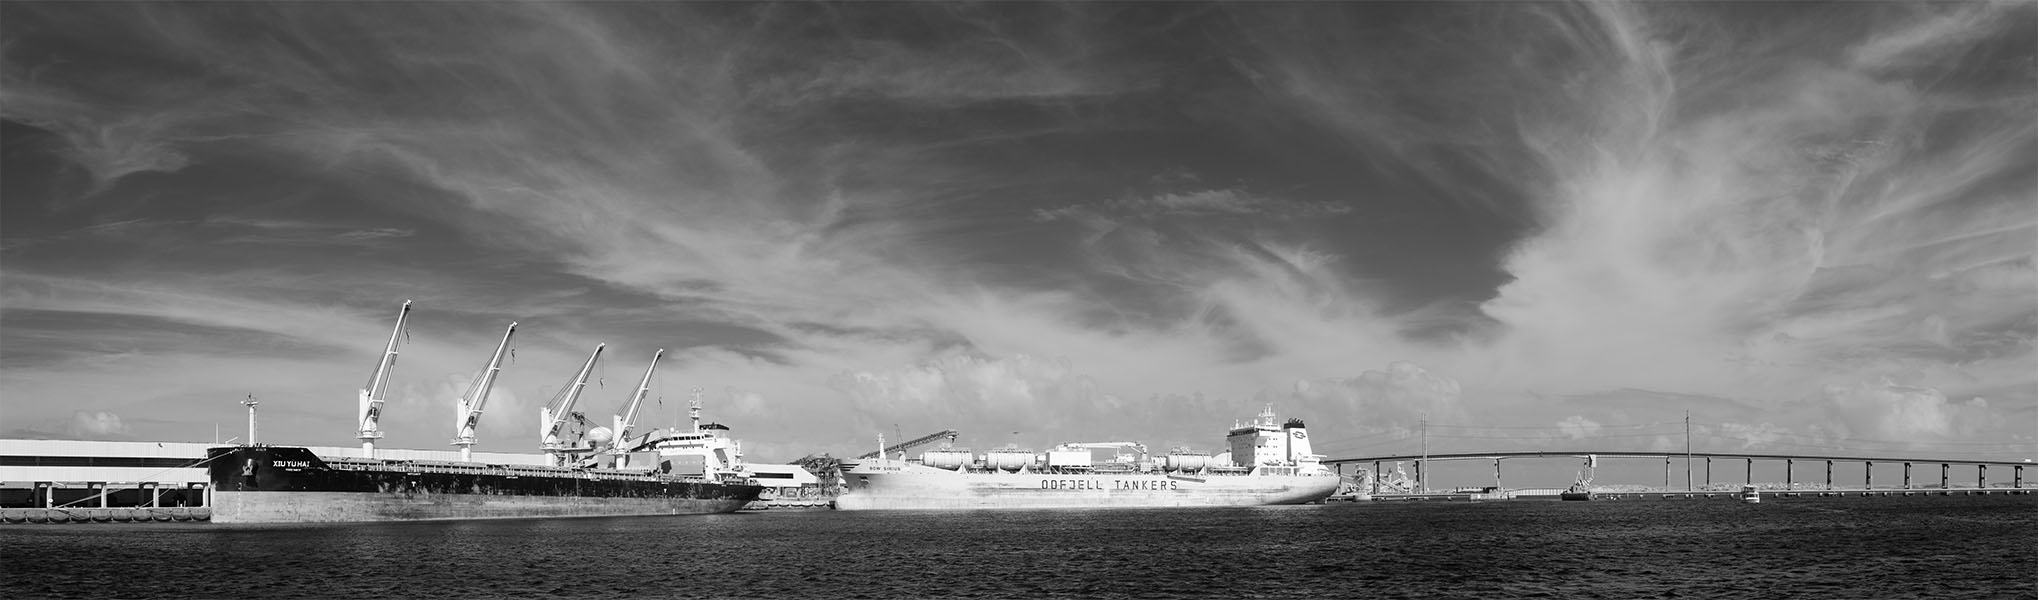 Infrared Panorama of Bulk Carrying Ships at Wharf with Dramatic Sky